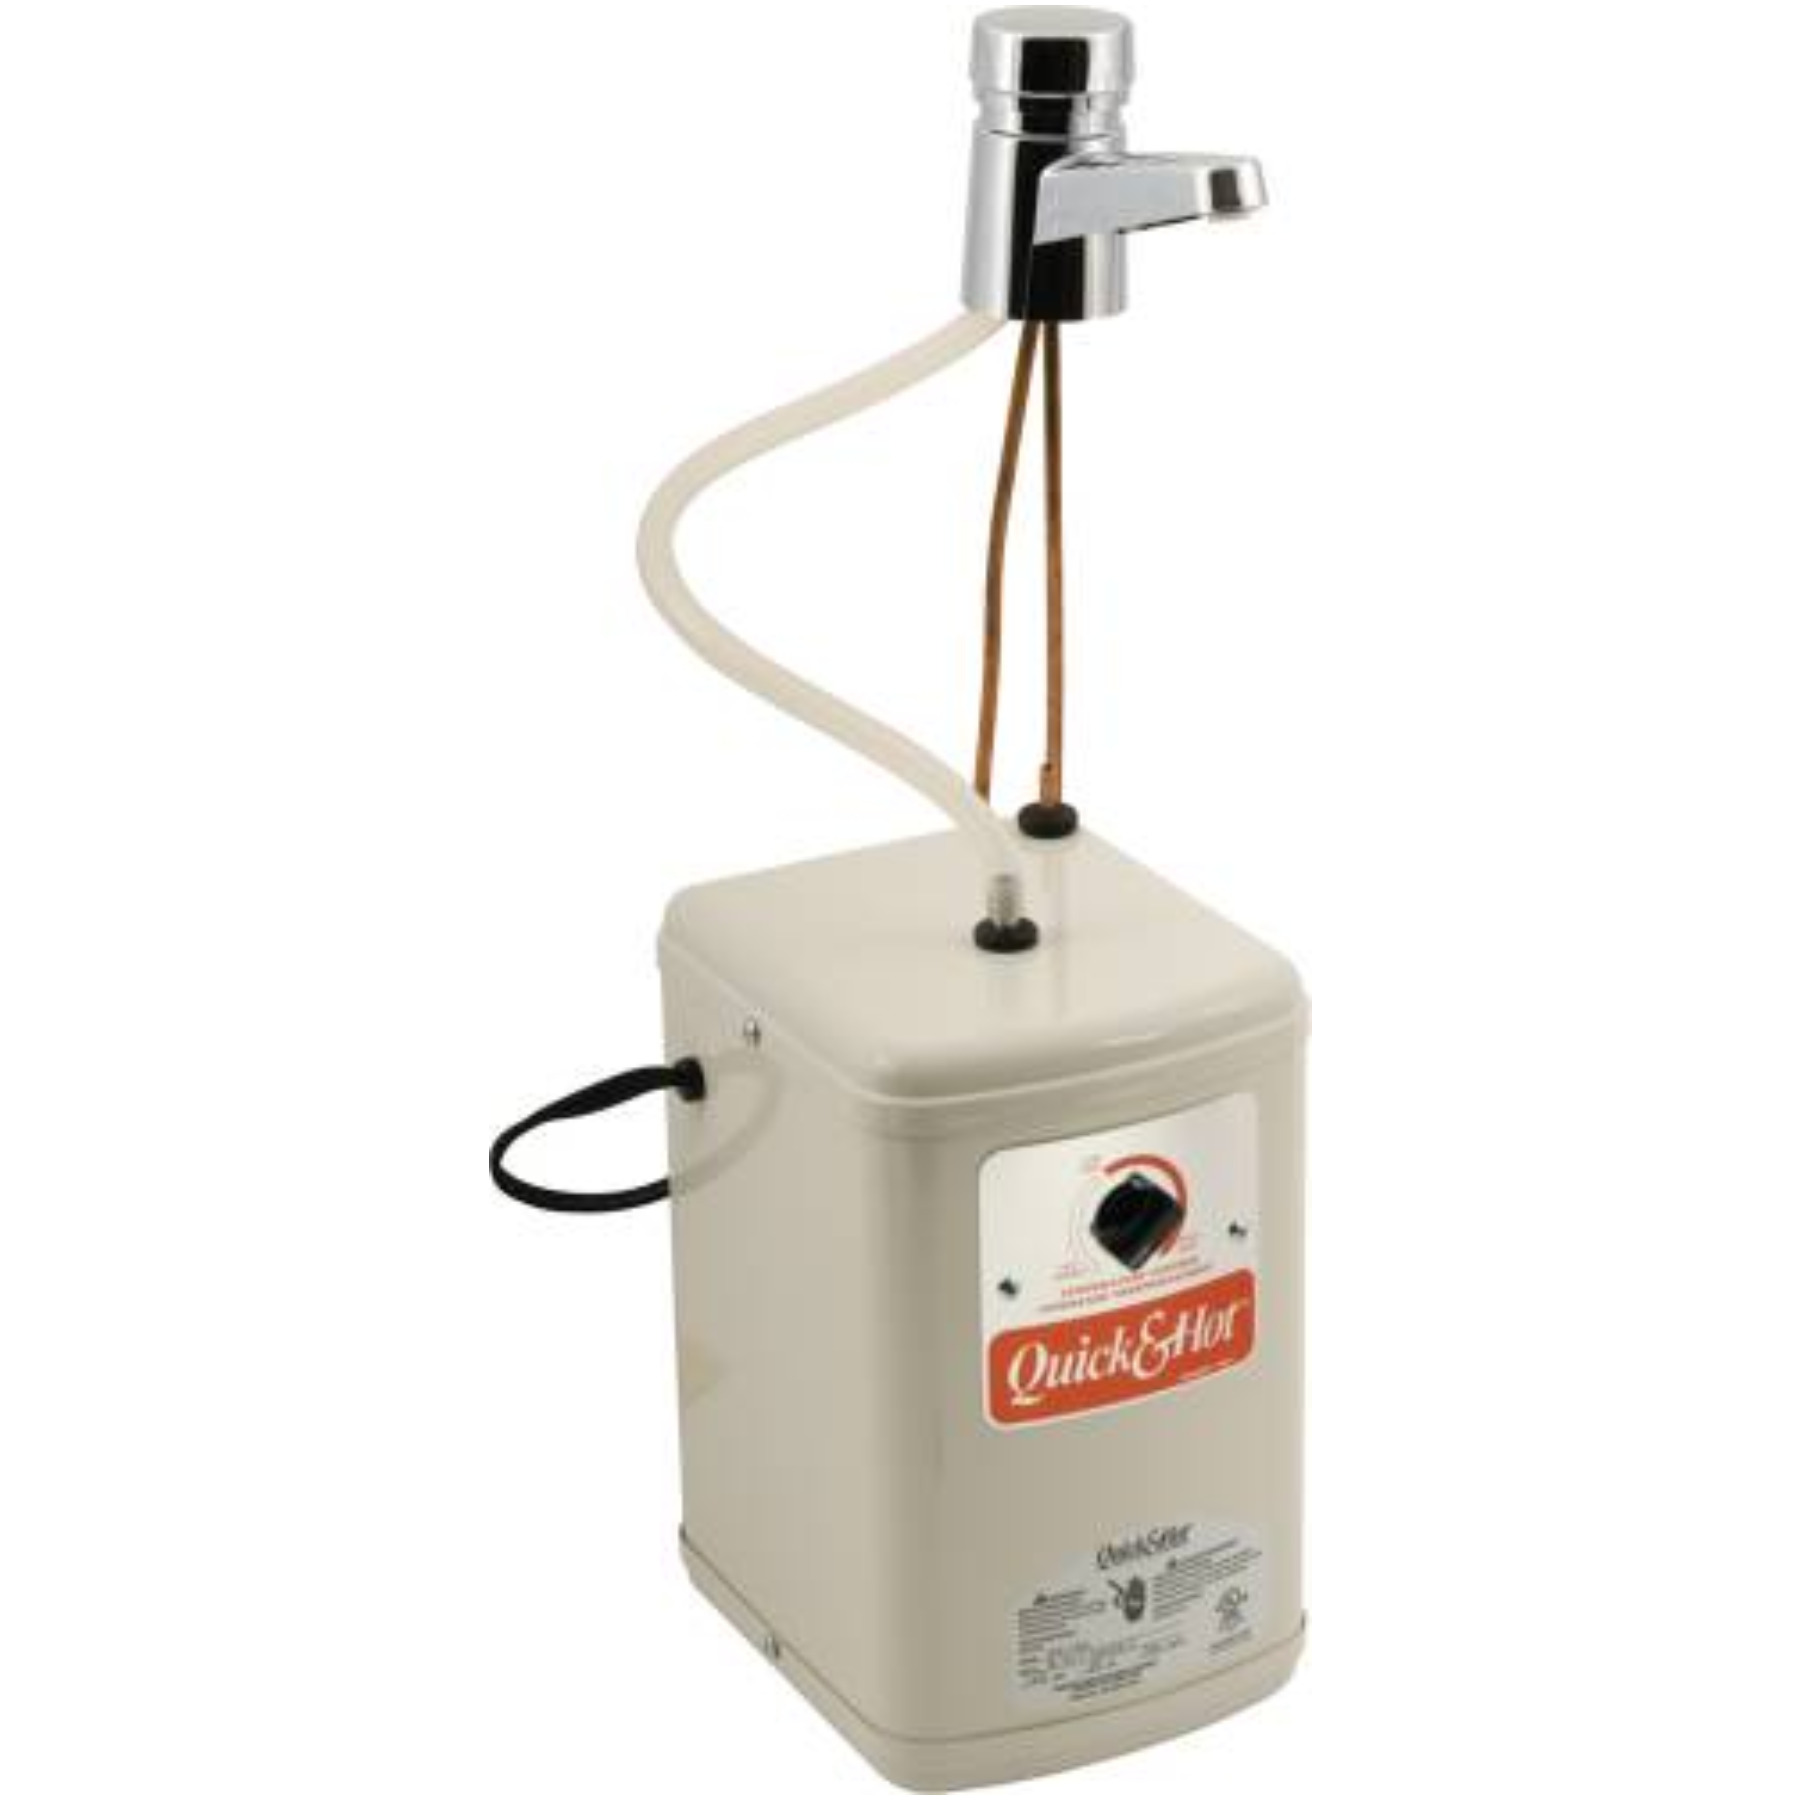 PREMIER INSTANT HOT WATER DISPENSER